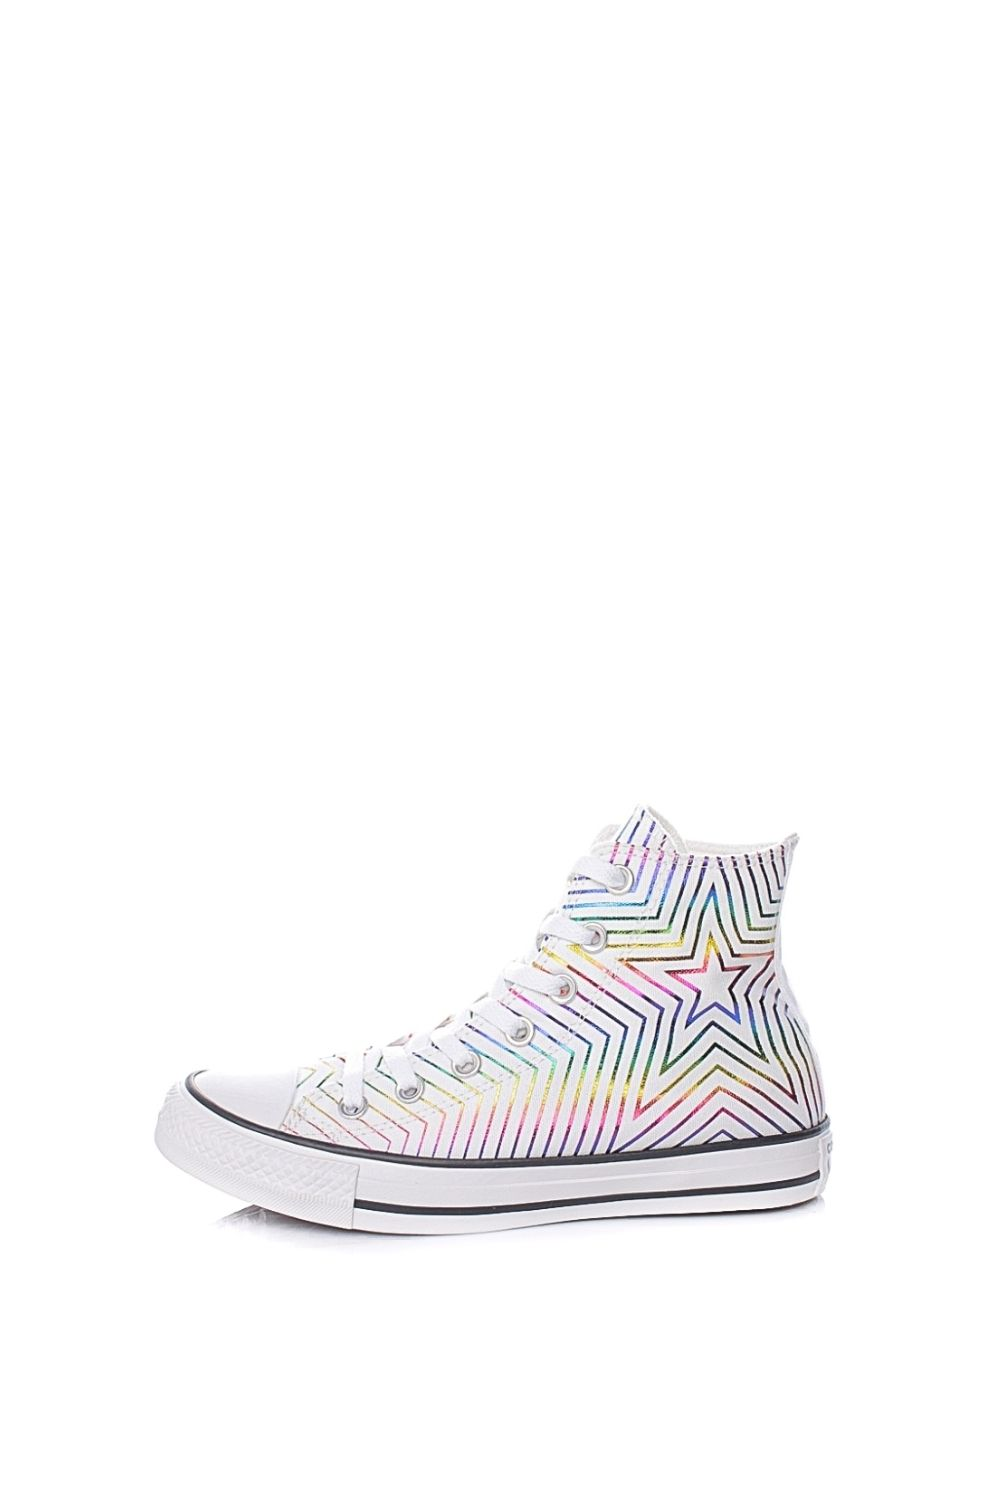 CONVERSE – Γυναικεία sneakers CONVERSE CHUCK TAYLOR ALL STAR λευκά